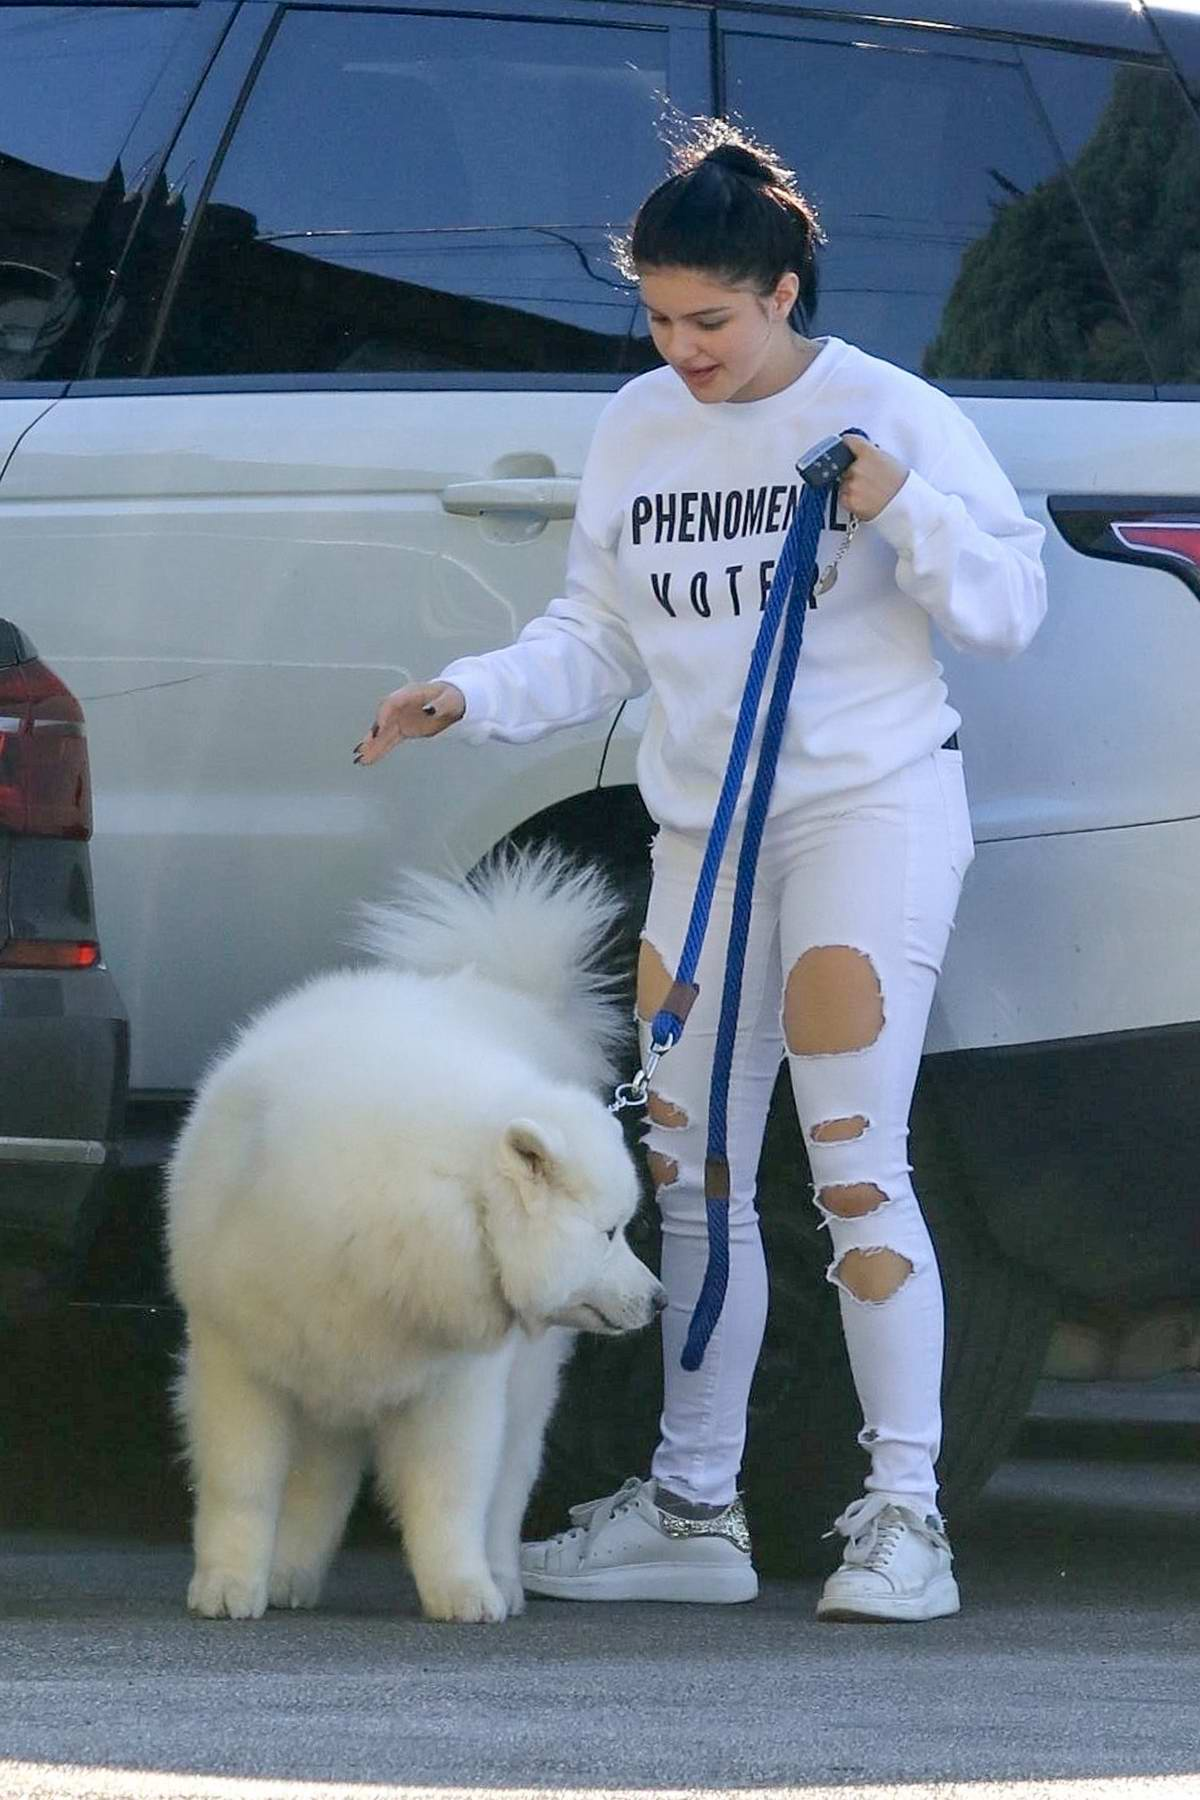 Ariel Winter wears white 'Phenomenal Voter' sweater with a pair of ripped white jeans while visiting Vet's office with her dog in Studio City, Los Angeles